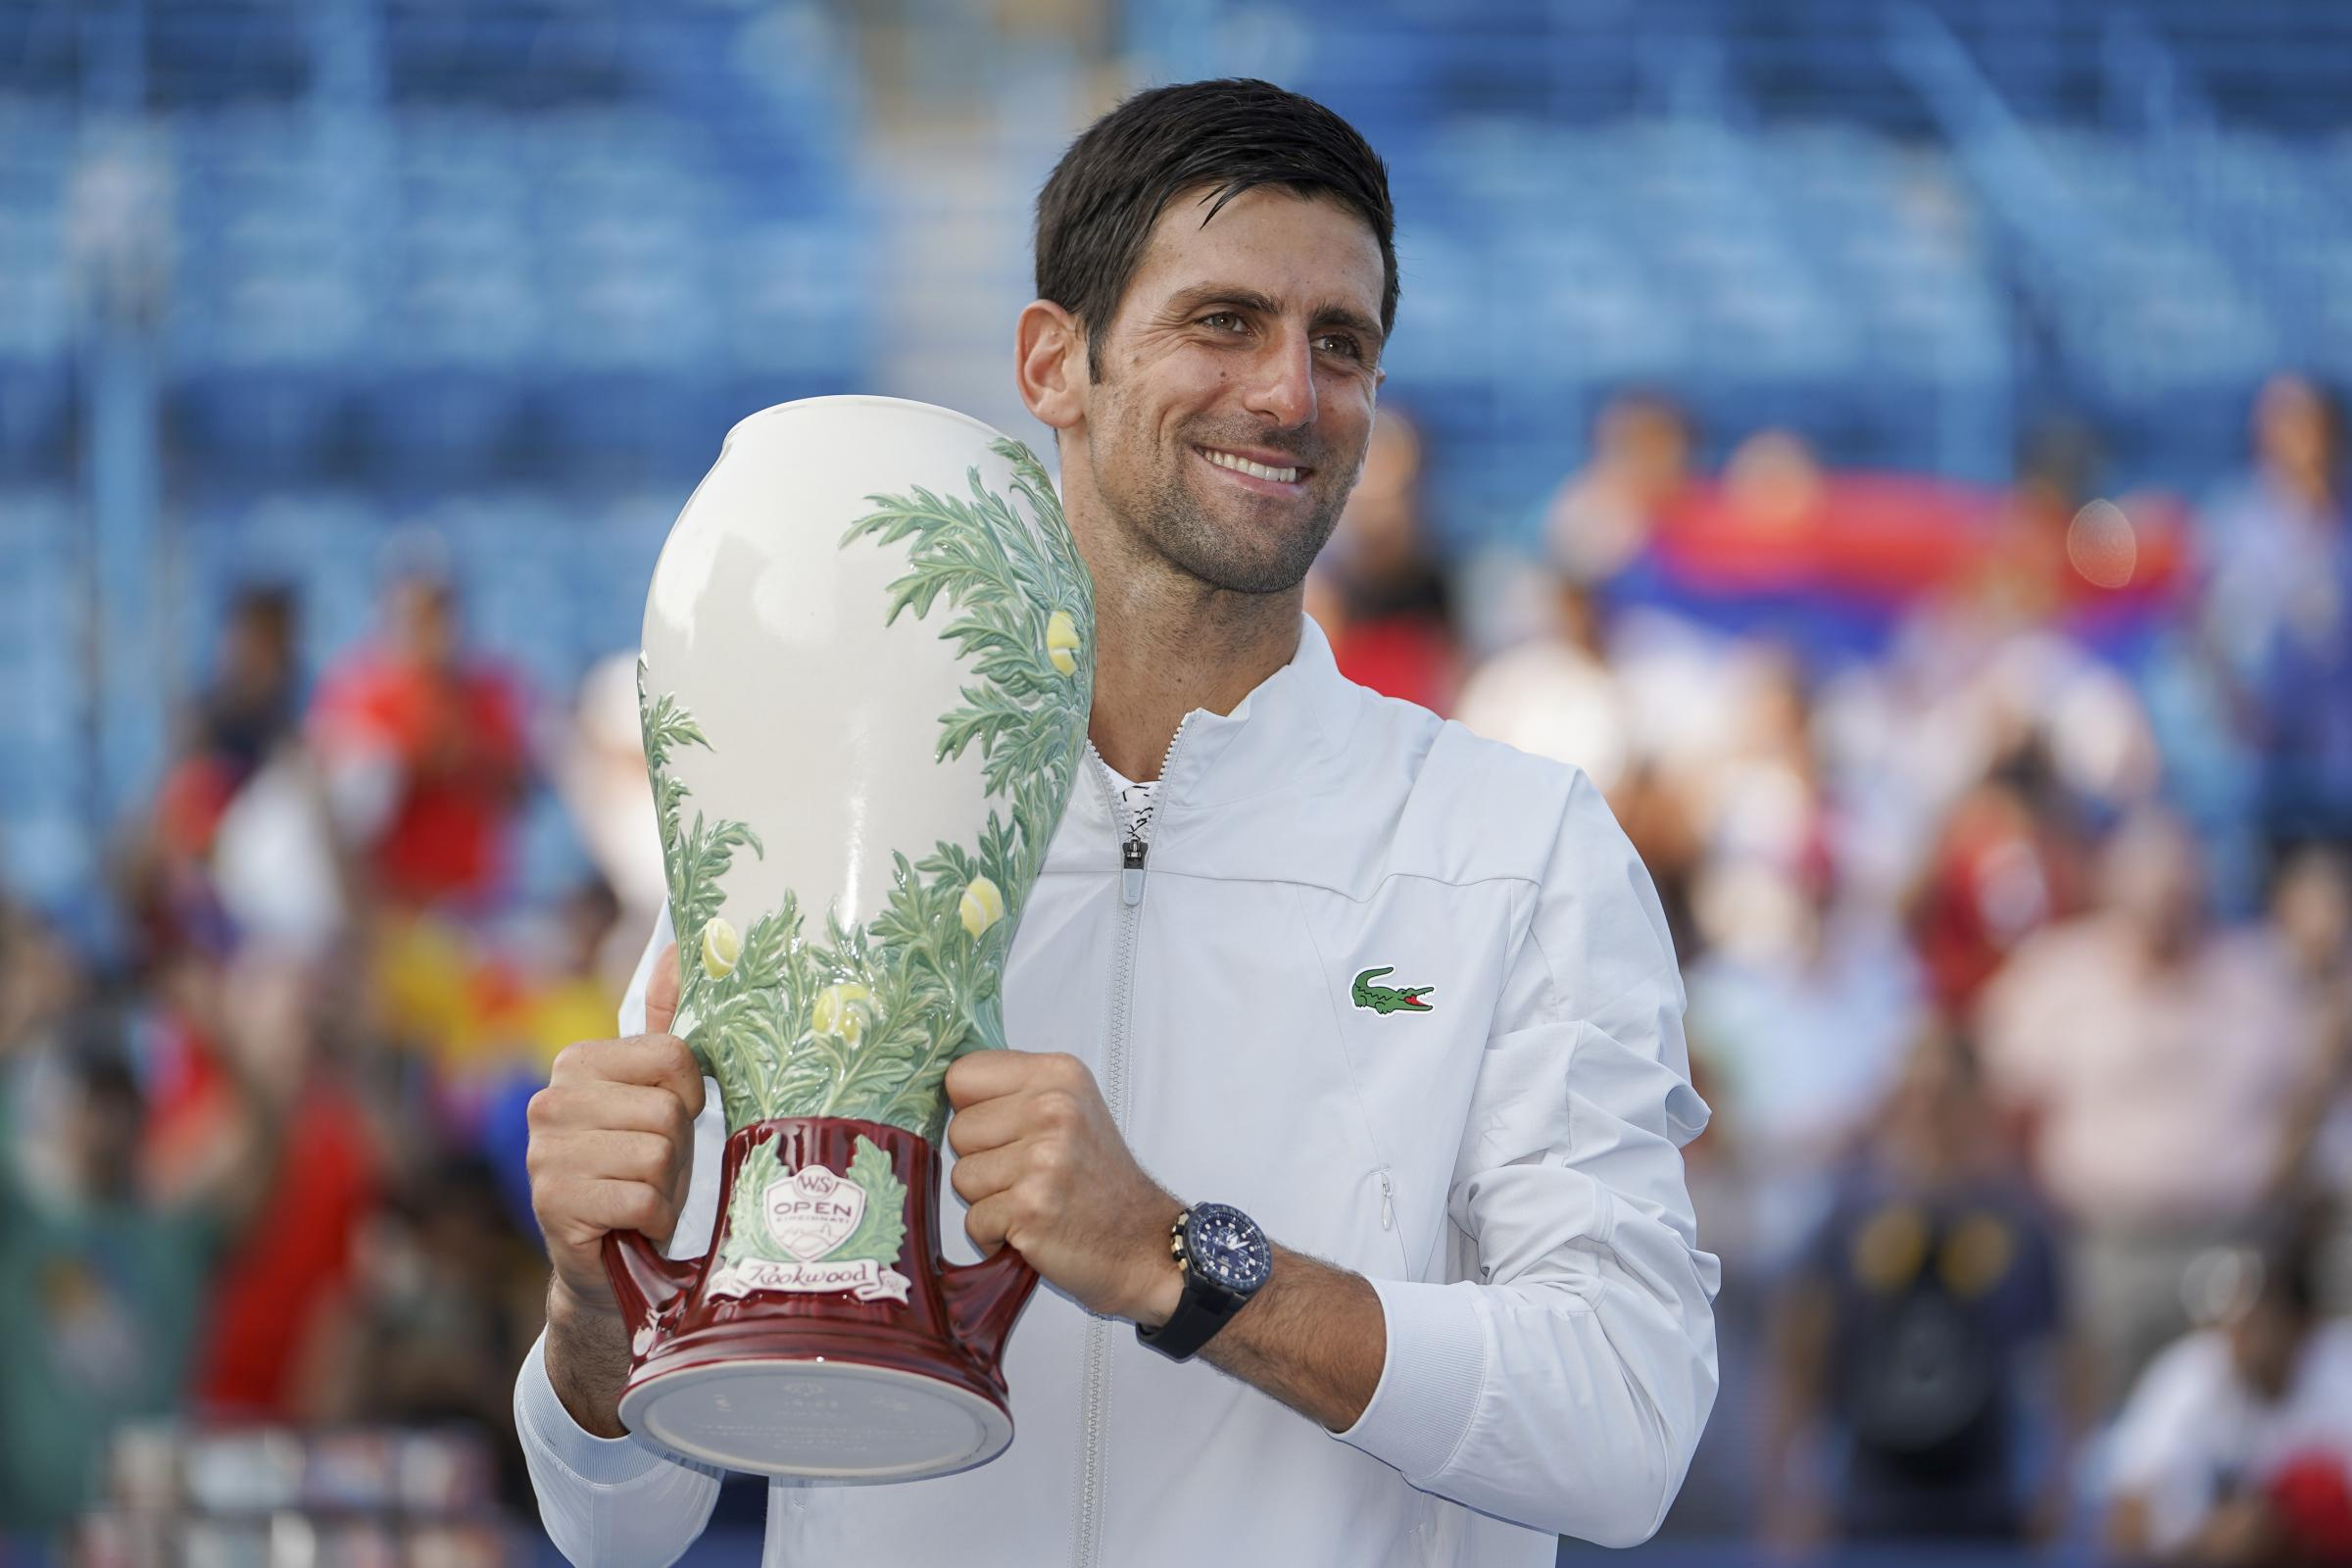 Novak Djokovic poses with the trophy